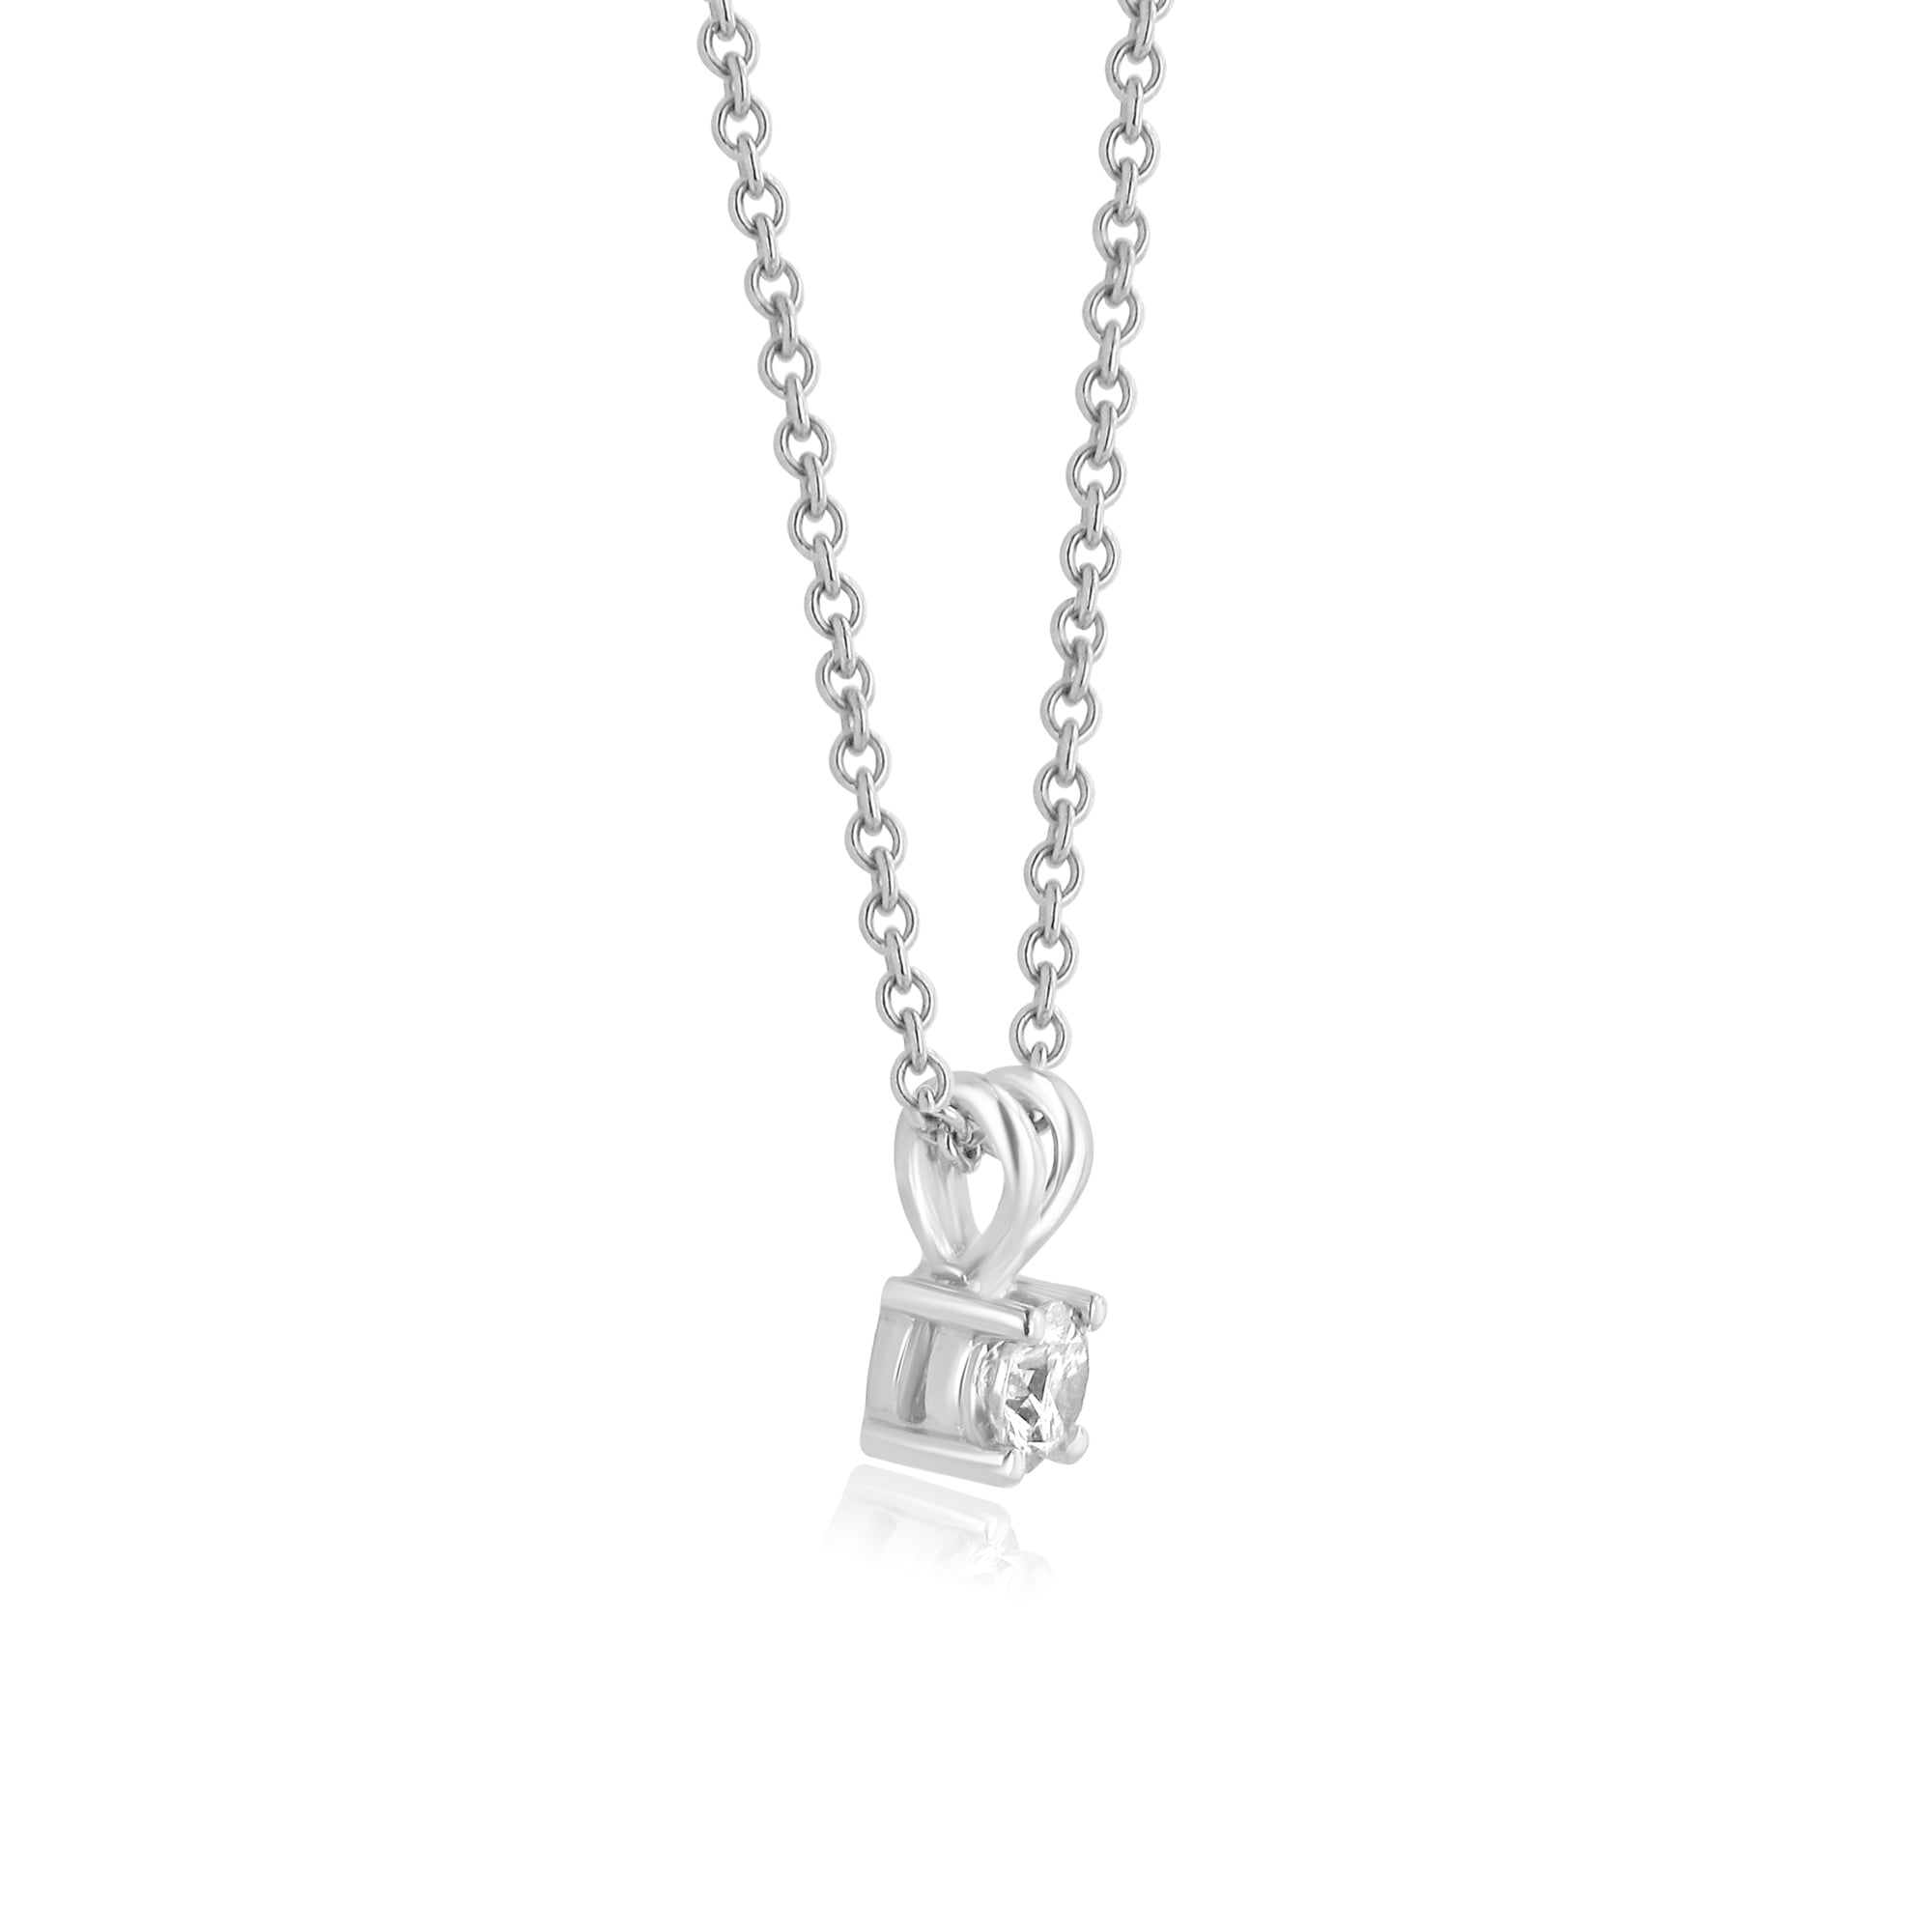 83074b38db9632 18ct White Gold 0.33ct Round Diamond Necklace - Womens from Avanti ...